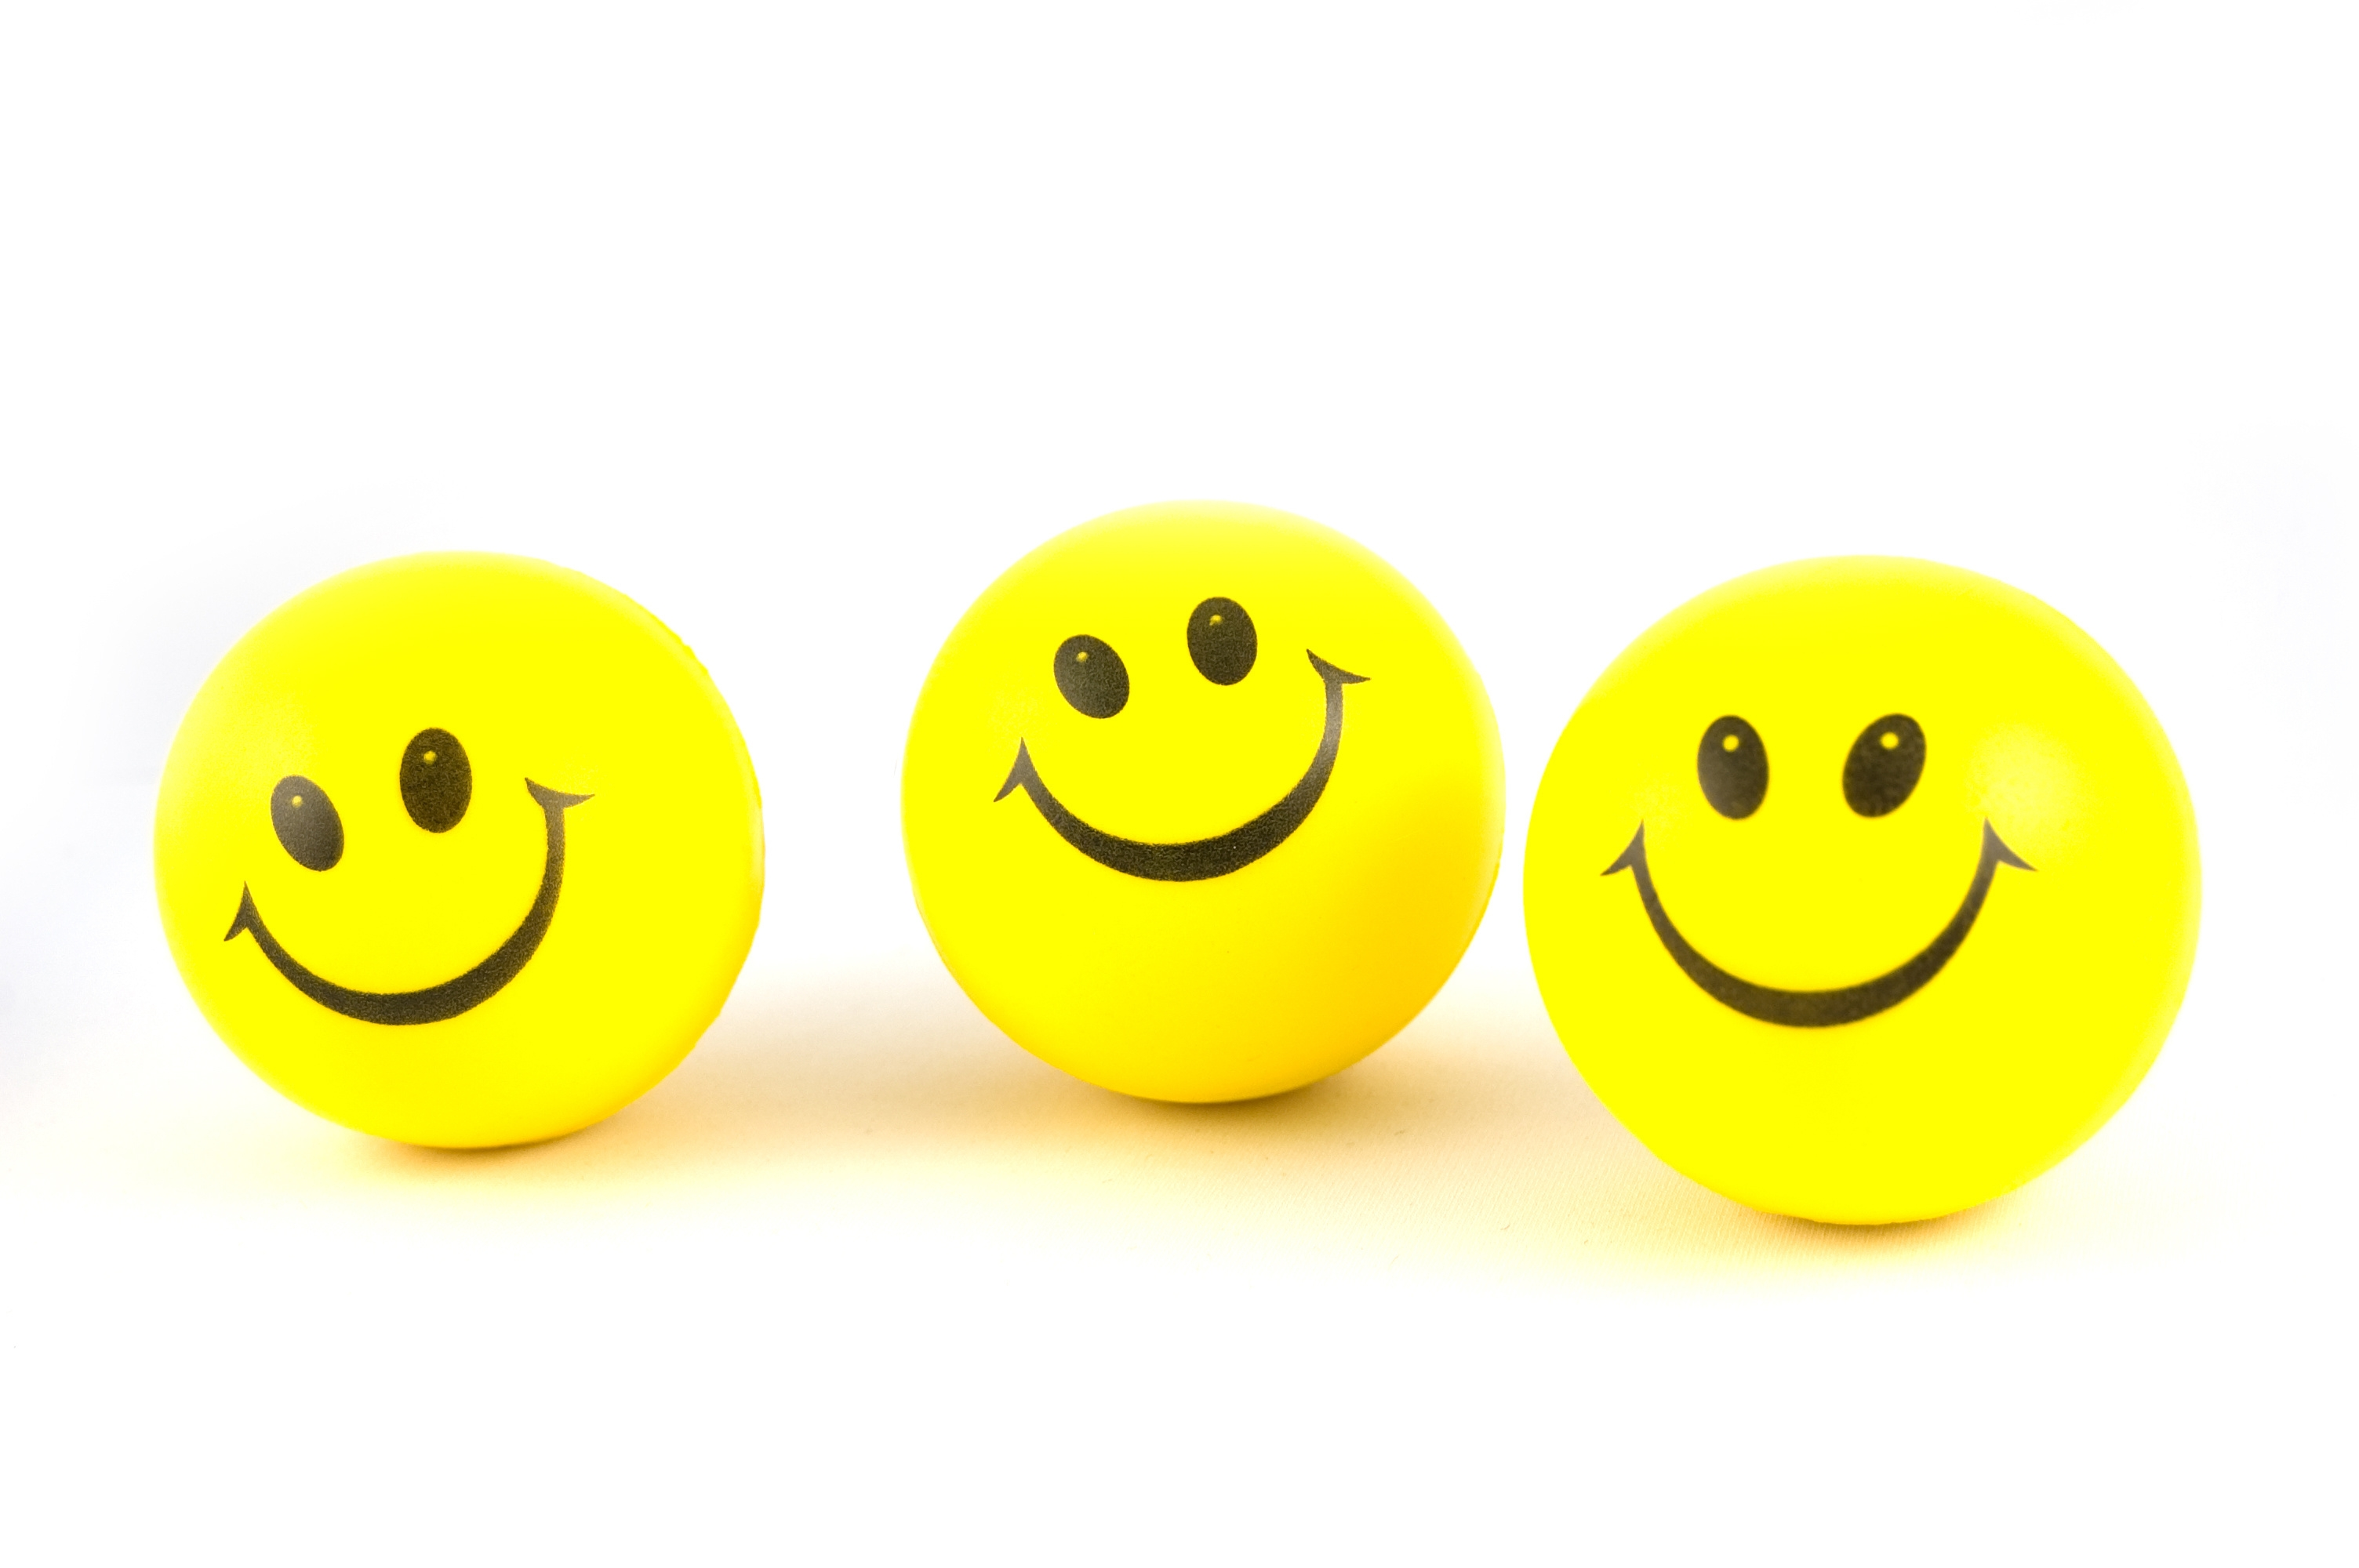 17 Small Smiley-Face Emoticons Images - Small Icon Smiley ...